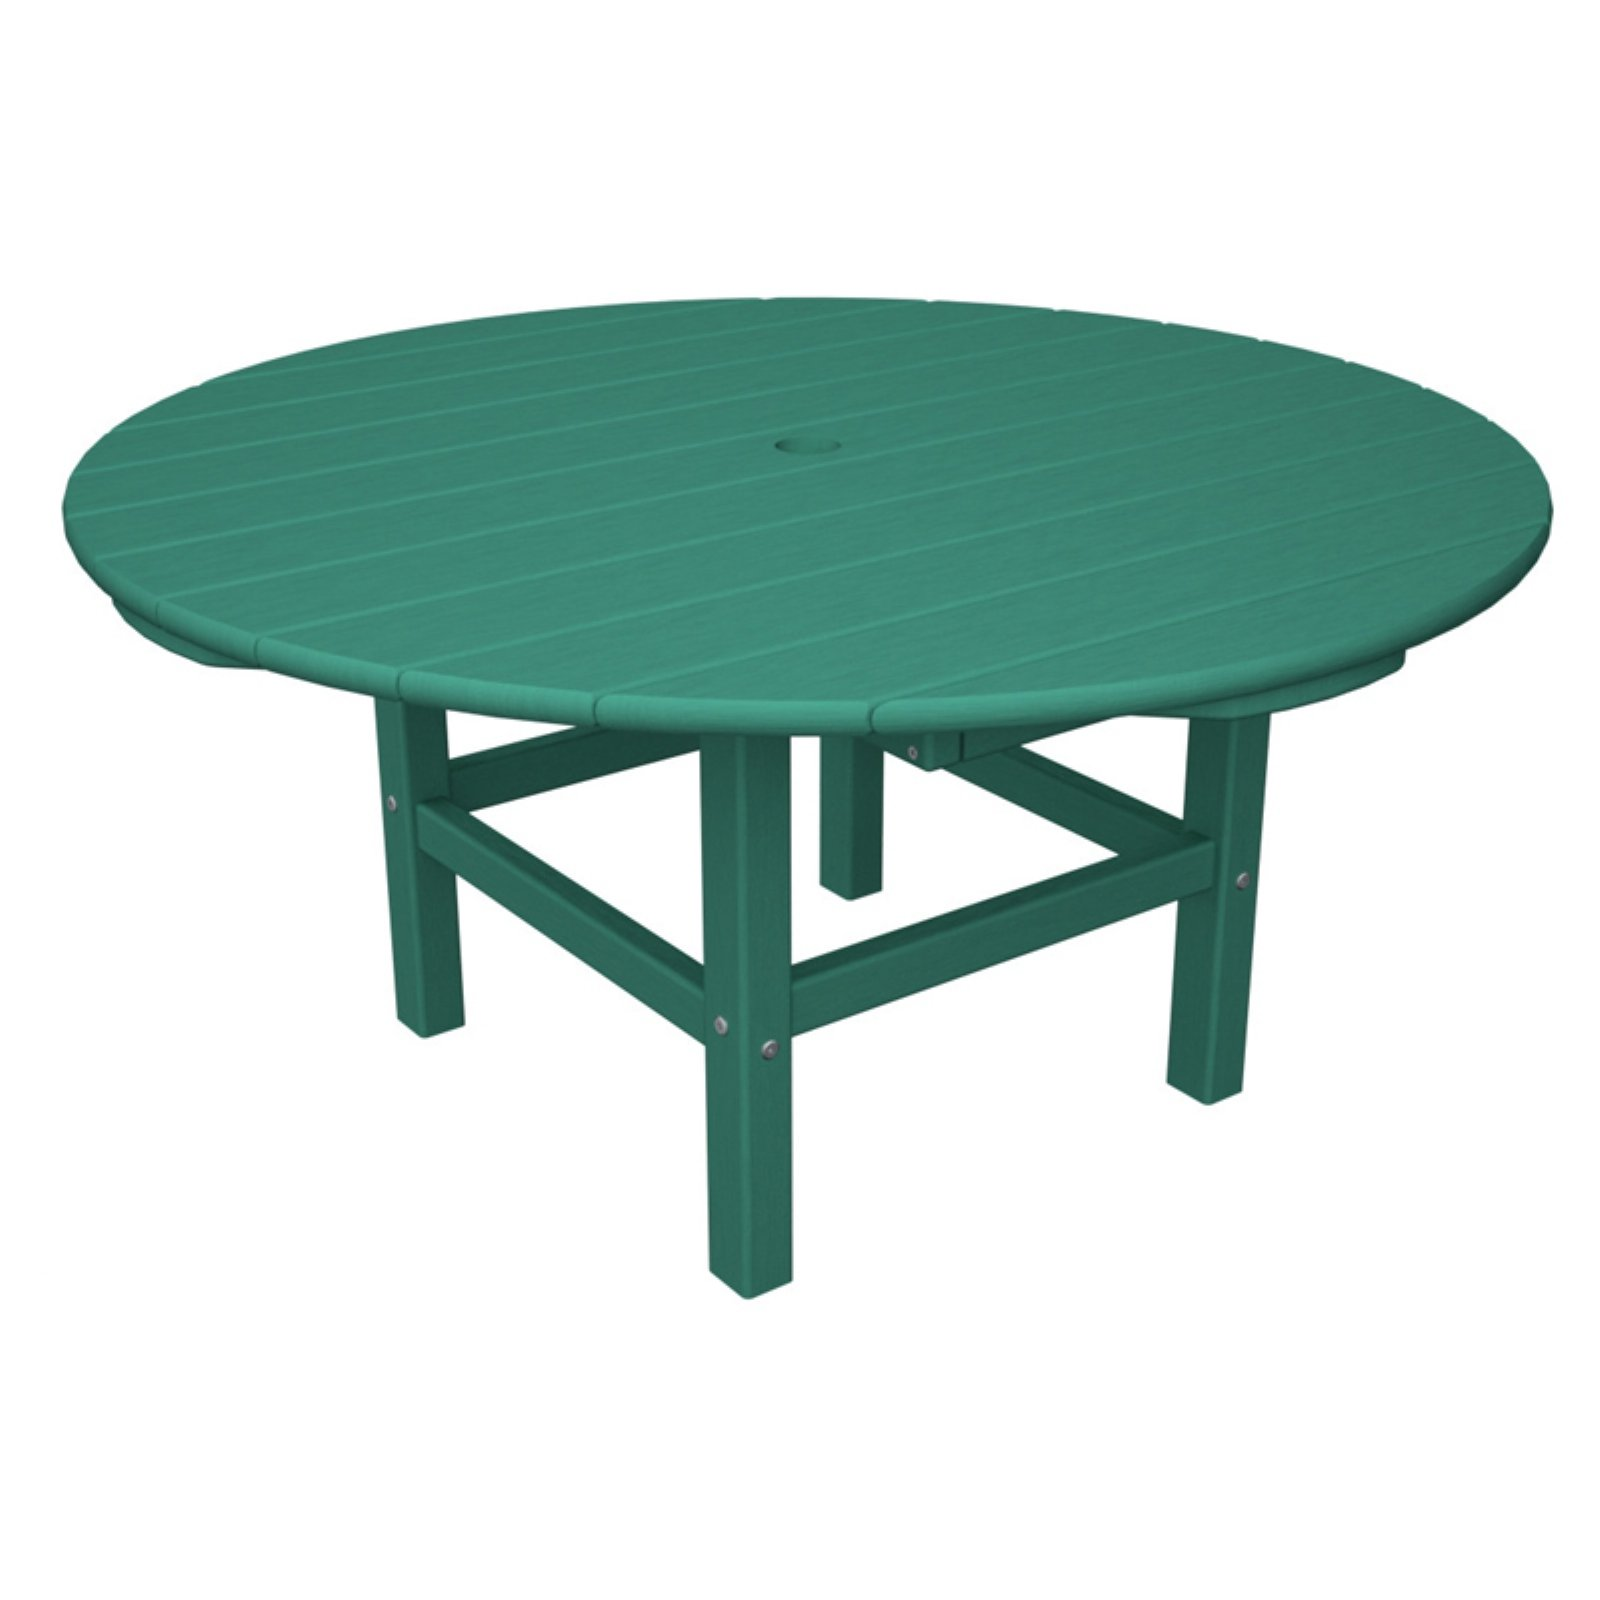 POLYWOOD® Classic Recycled Plastic Conversation Table - 38 in. Vibrant Colors